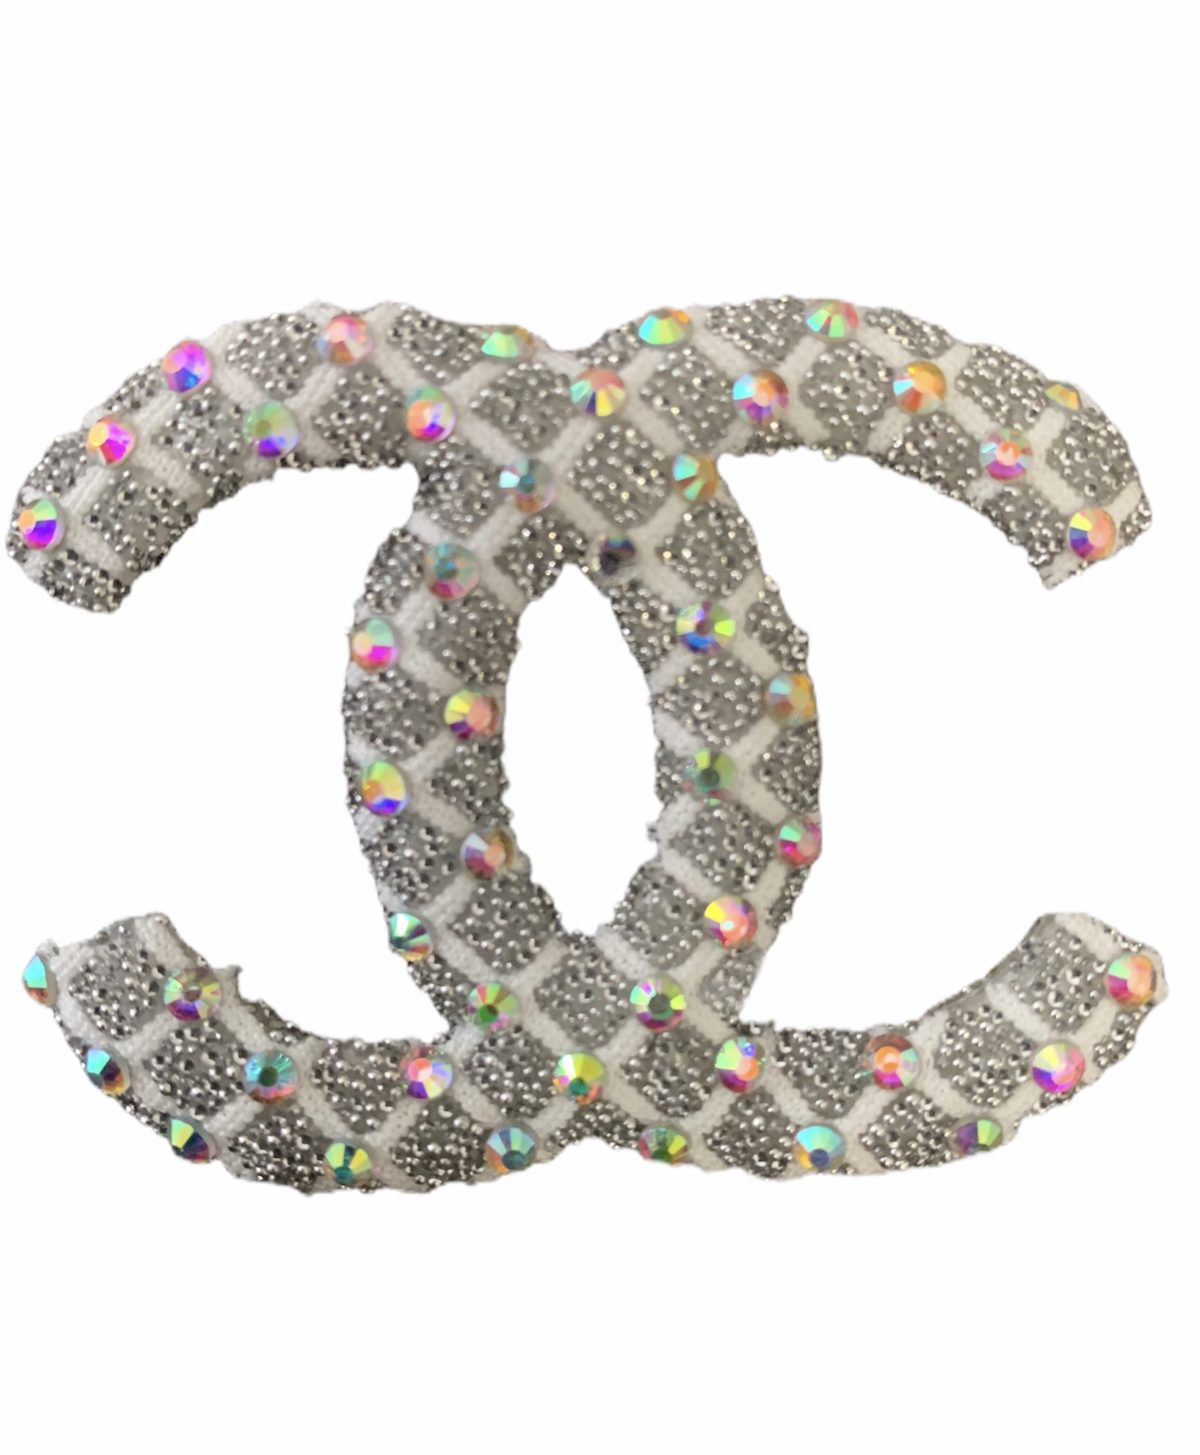 New Chanel Rhinestone Iron on Emblem Patch 1